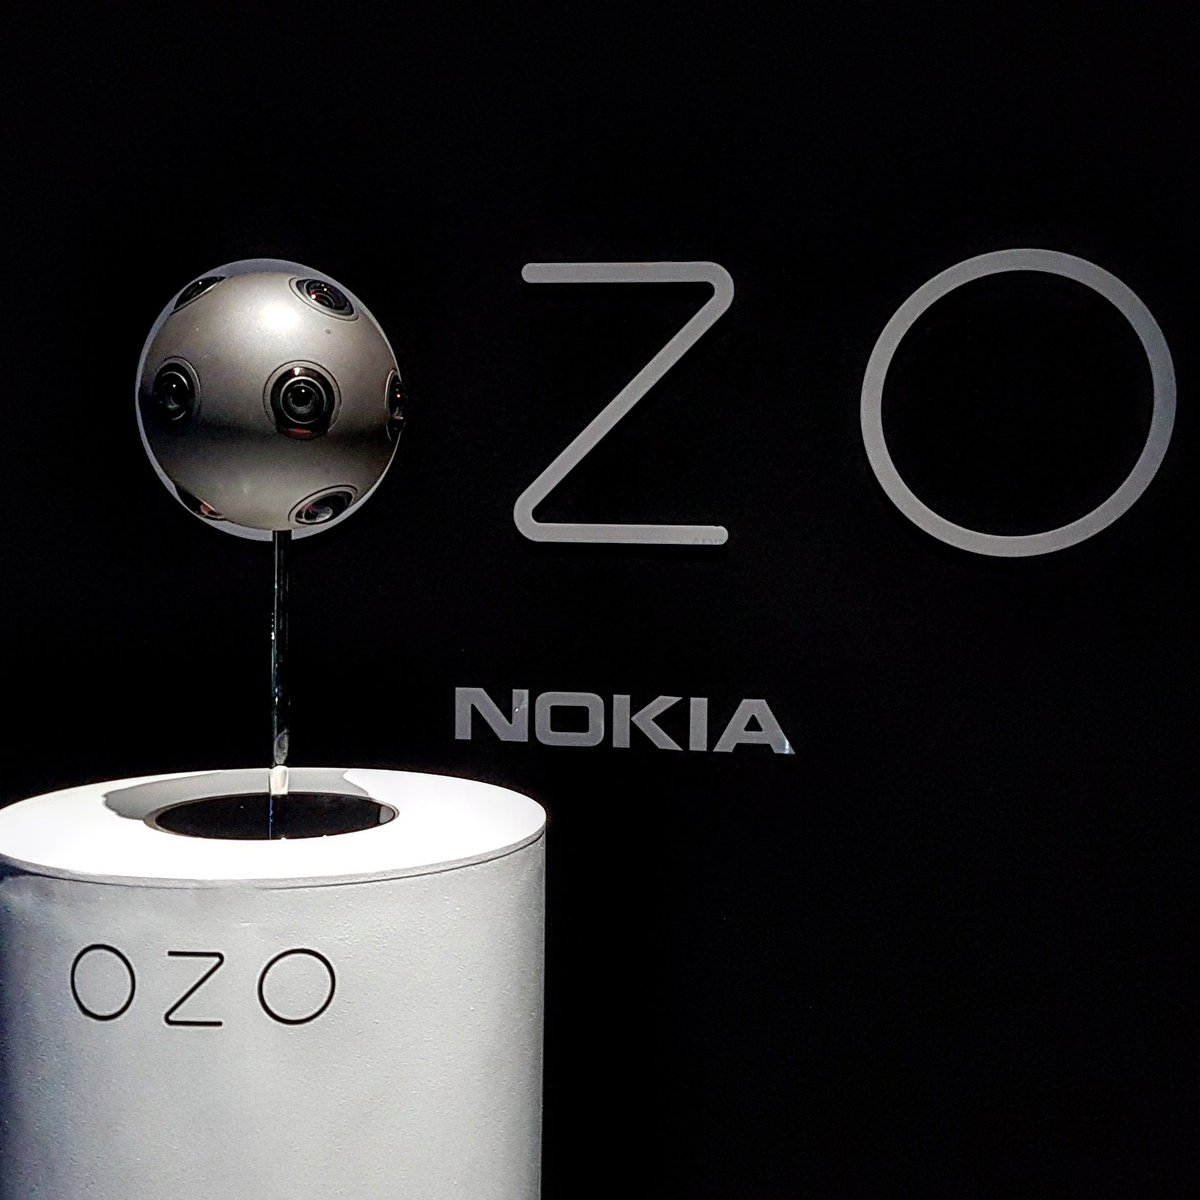 Testing @nokia @nokiaozo Ozo all week...got big plans for that little ball! https://t.co/FPhVg0qvPE